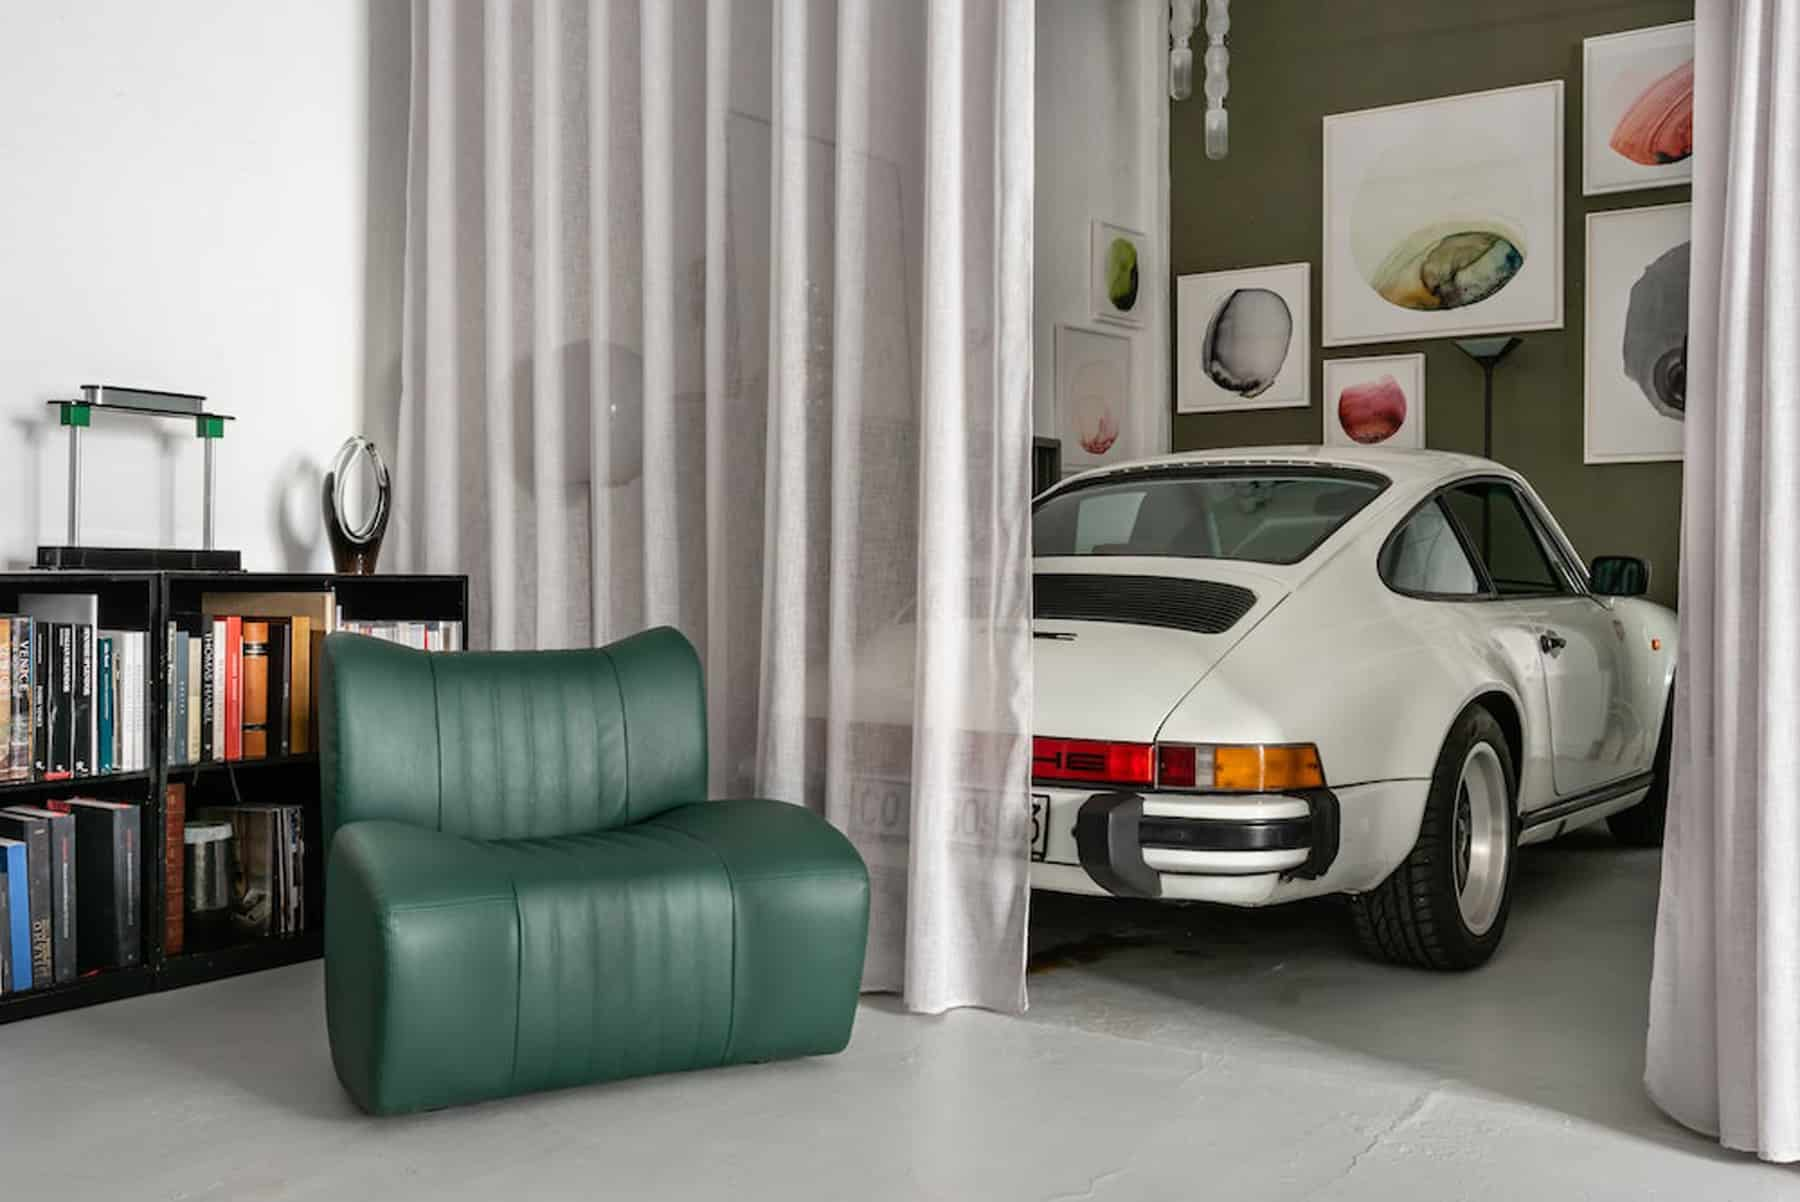 Tommaso Spinzi Porsche and green chair